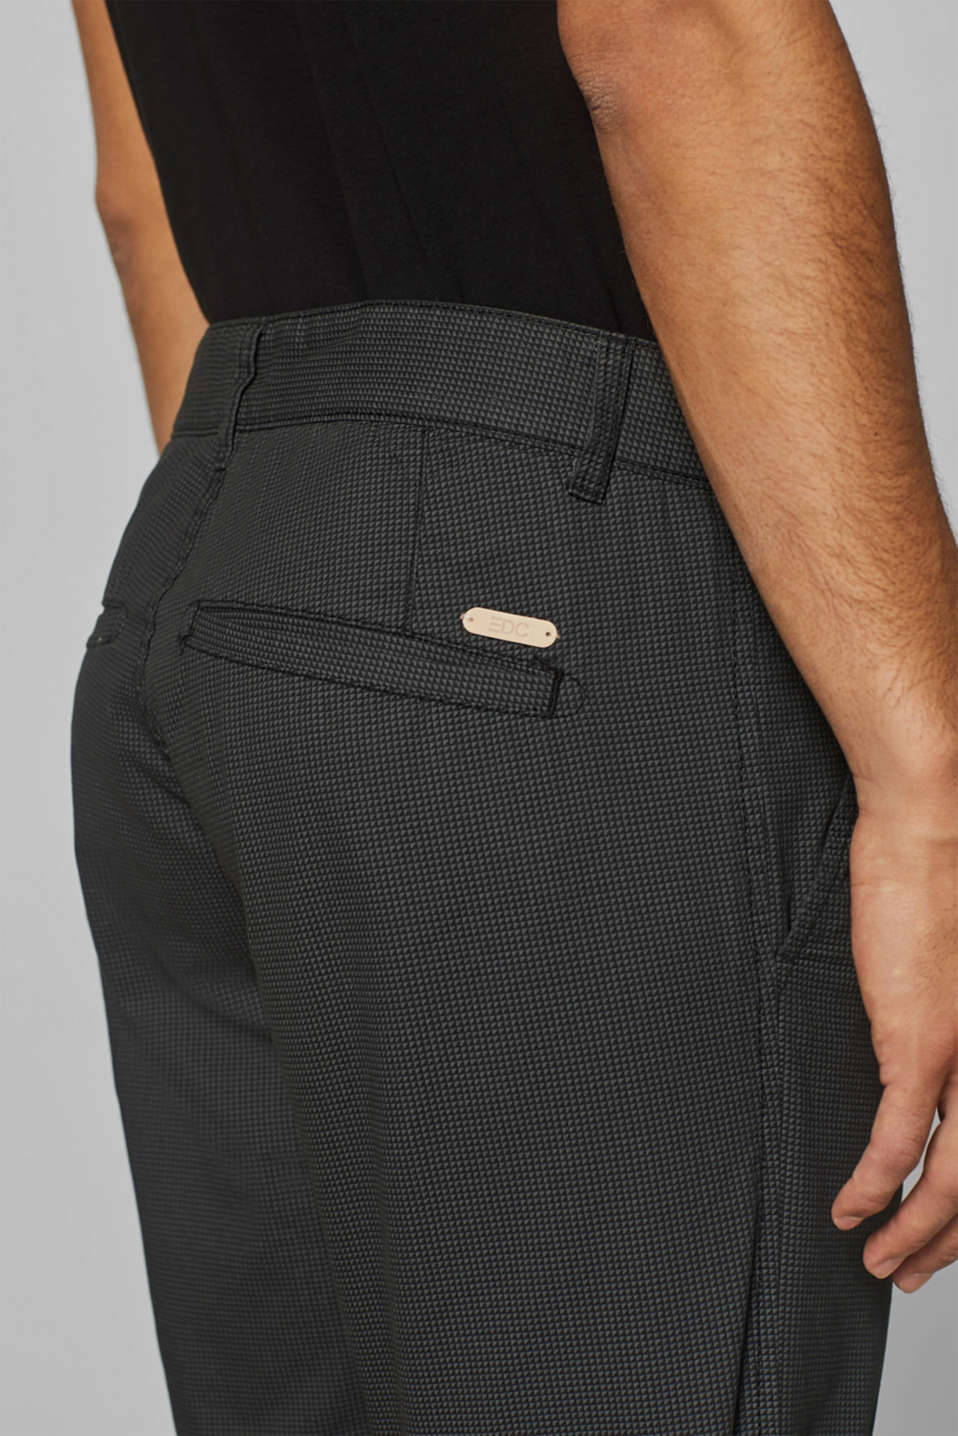 Shorts woven Slim fit, ANTHRACITE, detail image number 5